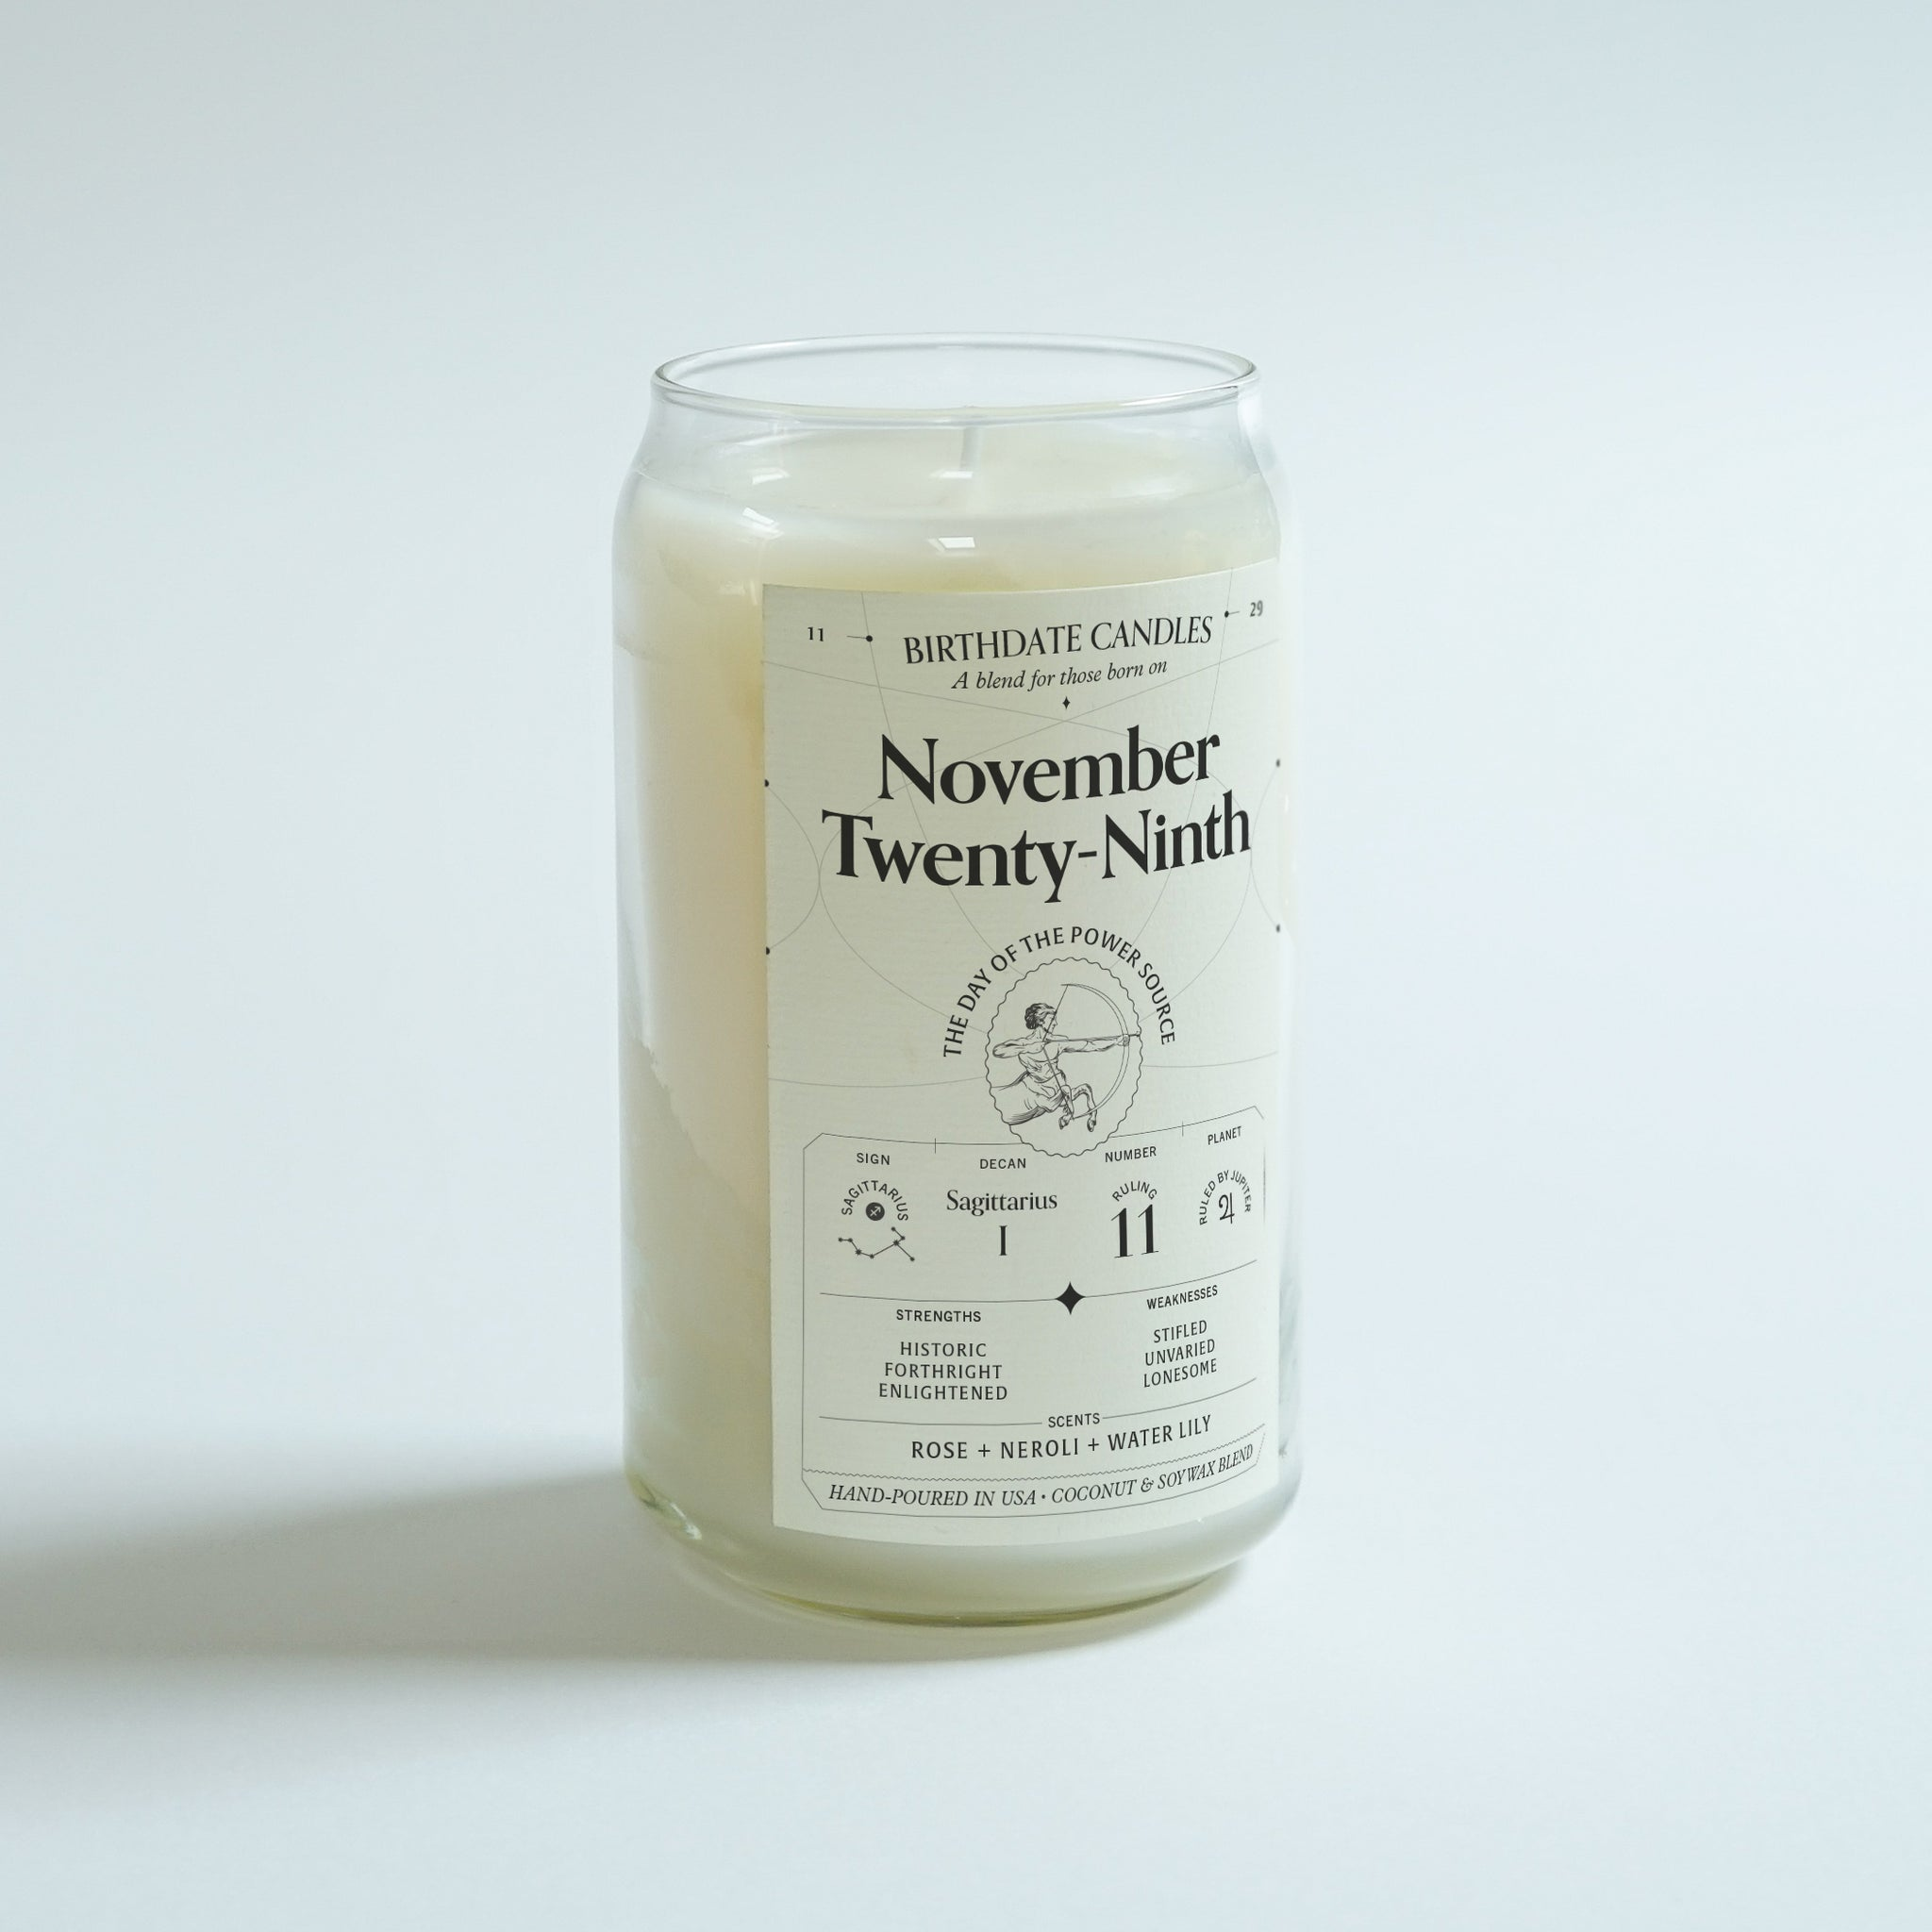 The November Twenty-Ninth Birthday Candle